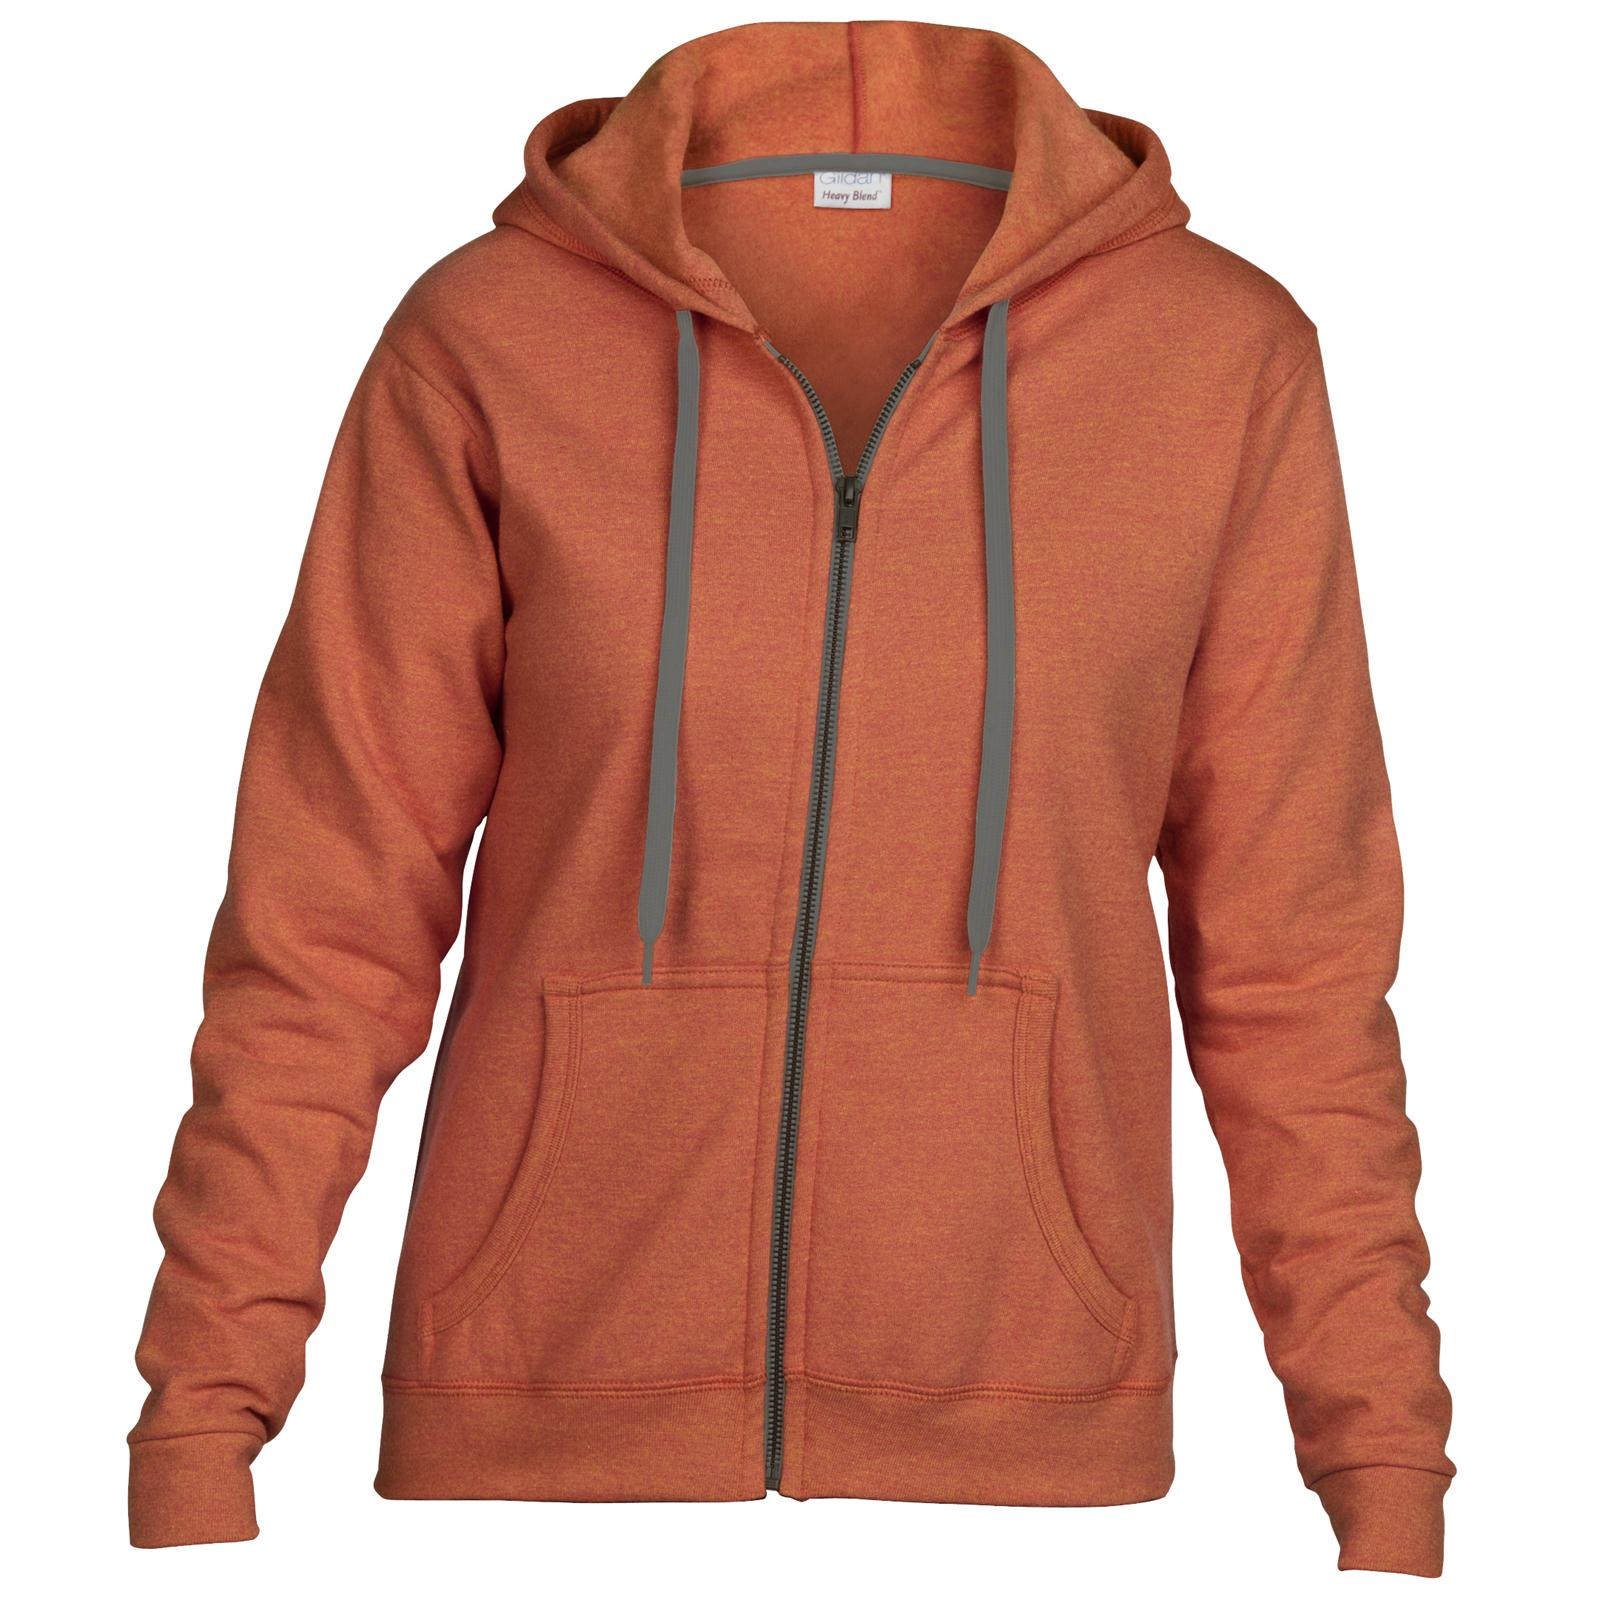 Carhartt women's hoodies and sweatshirts are ready to get to work. Every piece of Carhartt women's clothing is designed based on our classic styles and engineered to fit a woman's body. Every stitch has a .